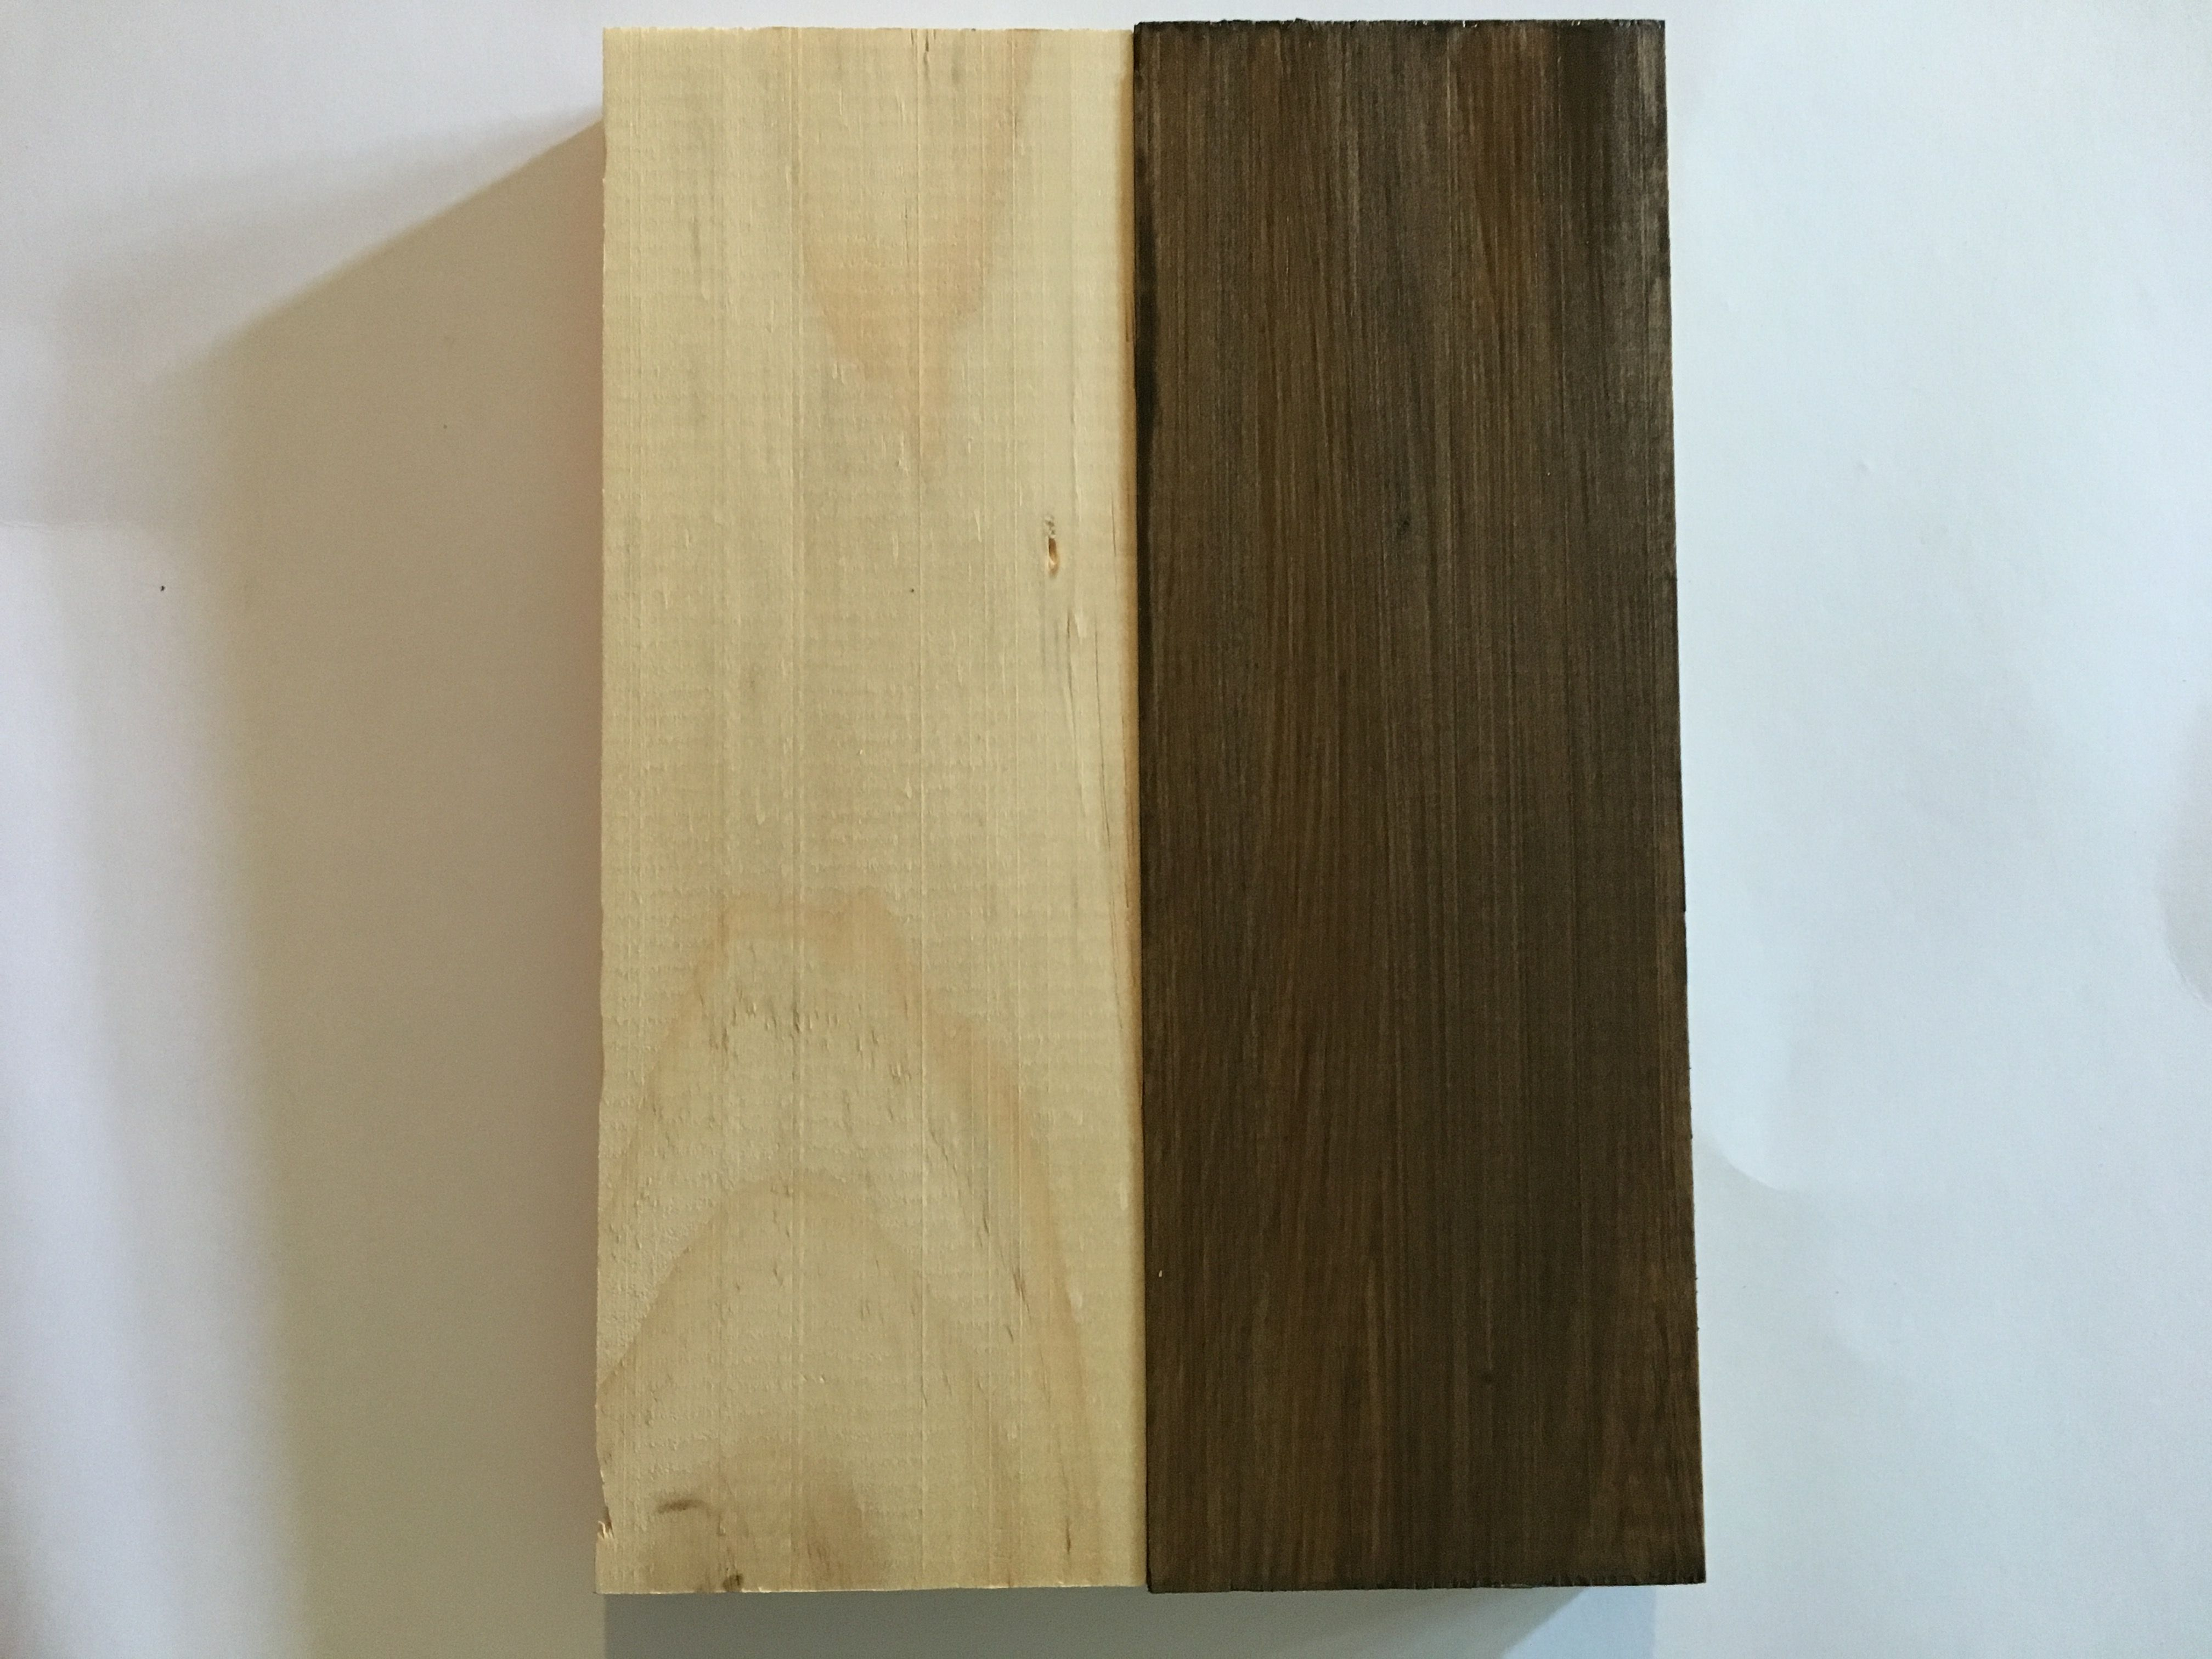 Newton S Mission Brown Wood Stain Painted On Pine Staining Wood Best Chalk Paint Chalk Paint Nz